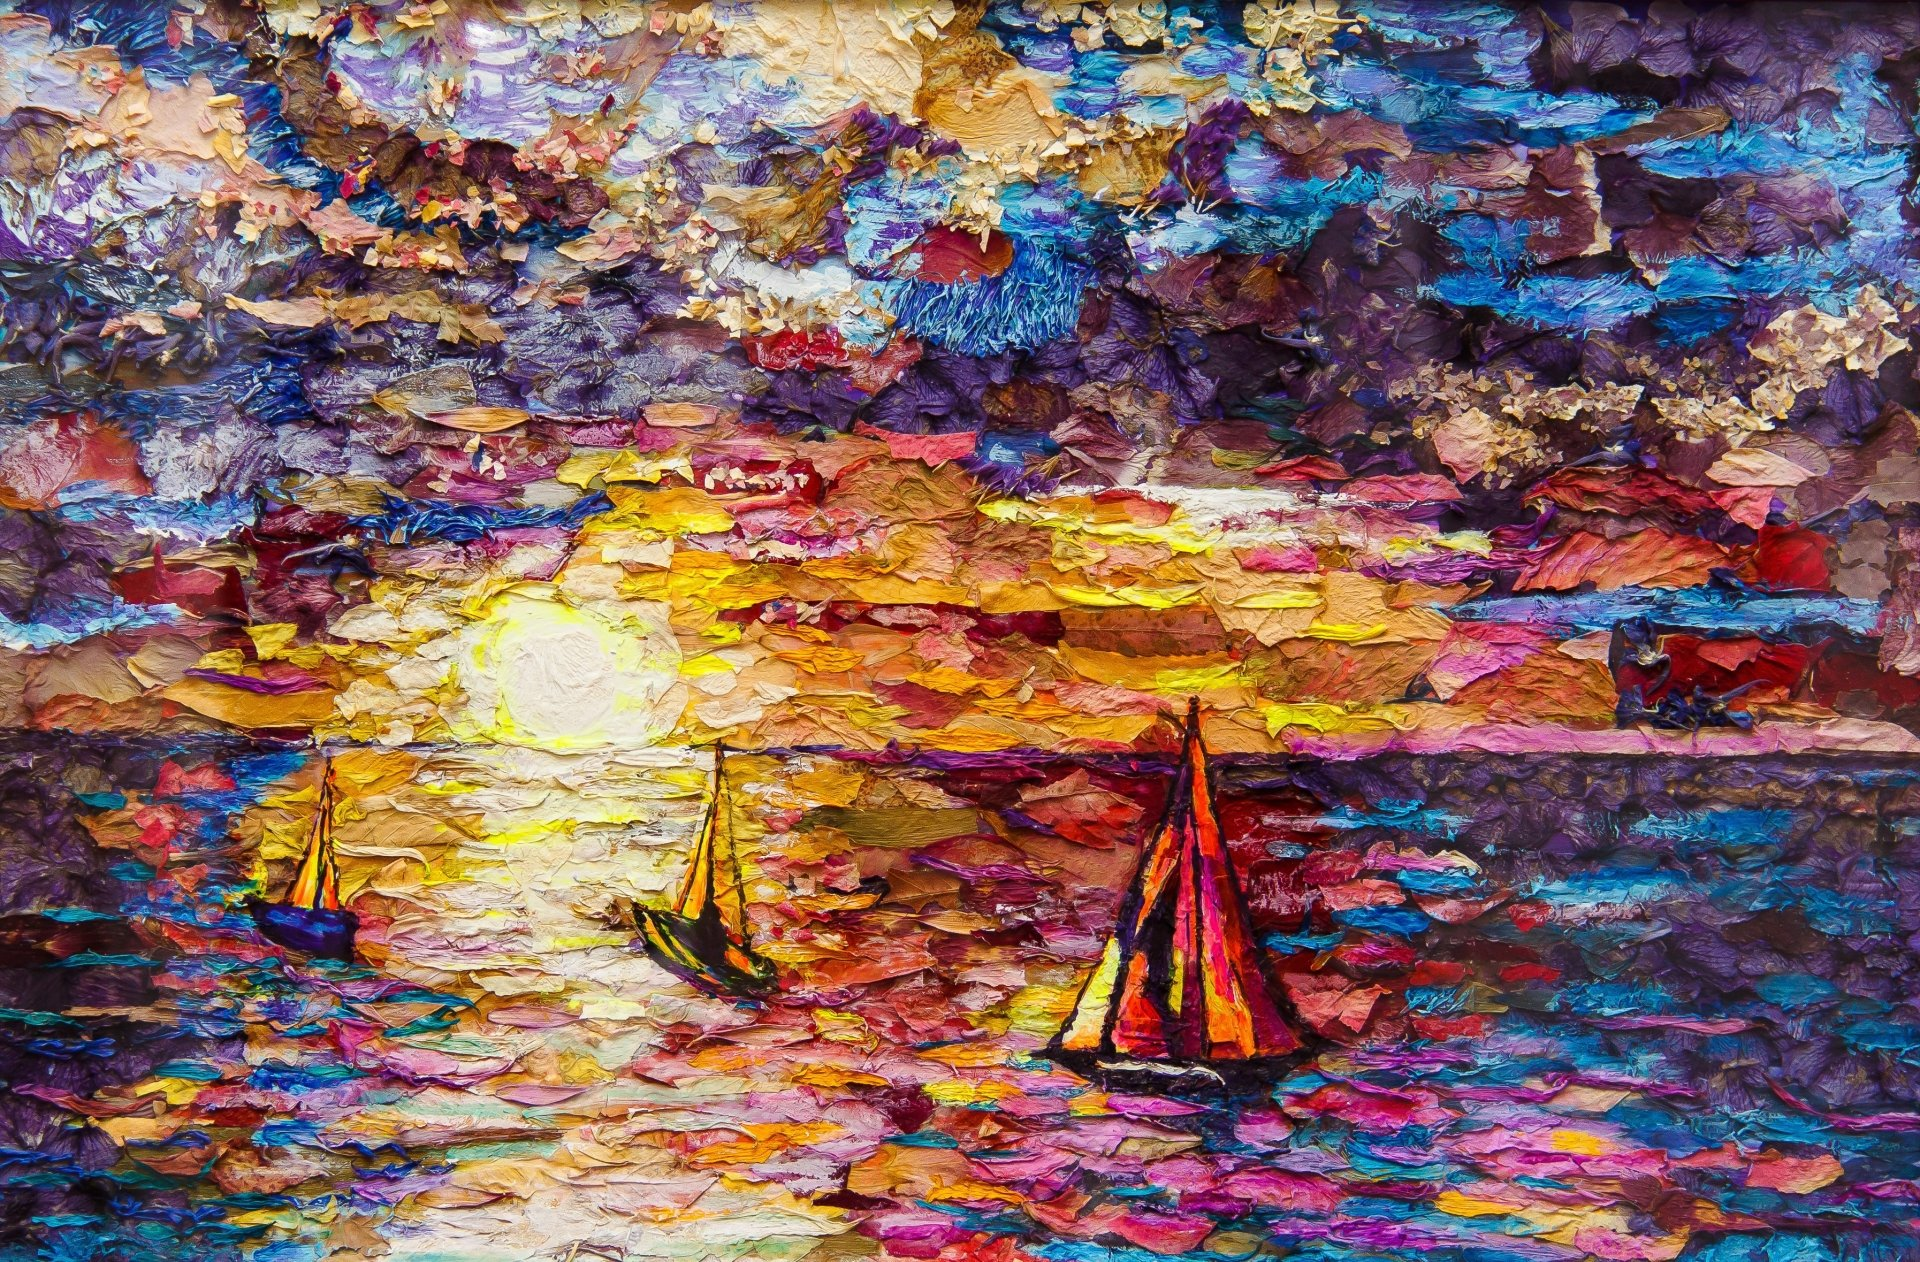 Artistic - Painting  Ocean Sky Boat Colors Colorful Wallpaper